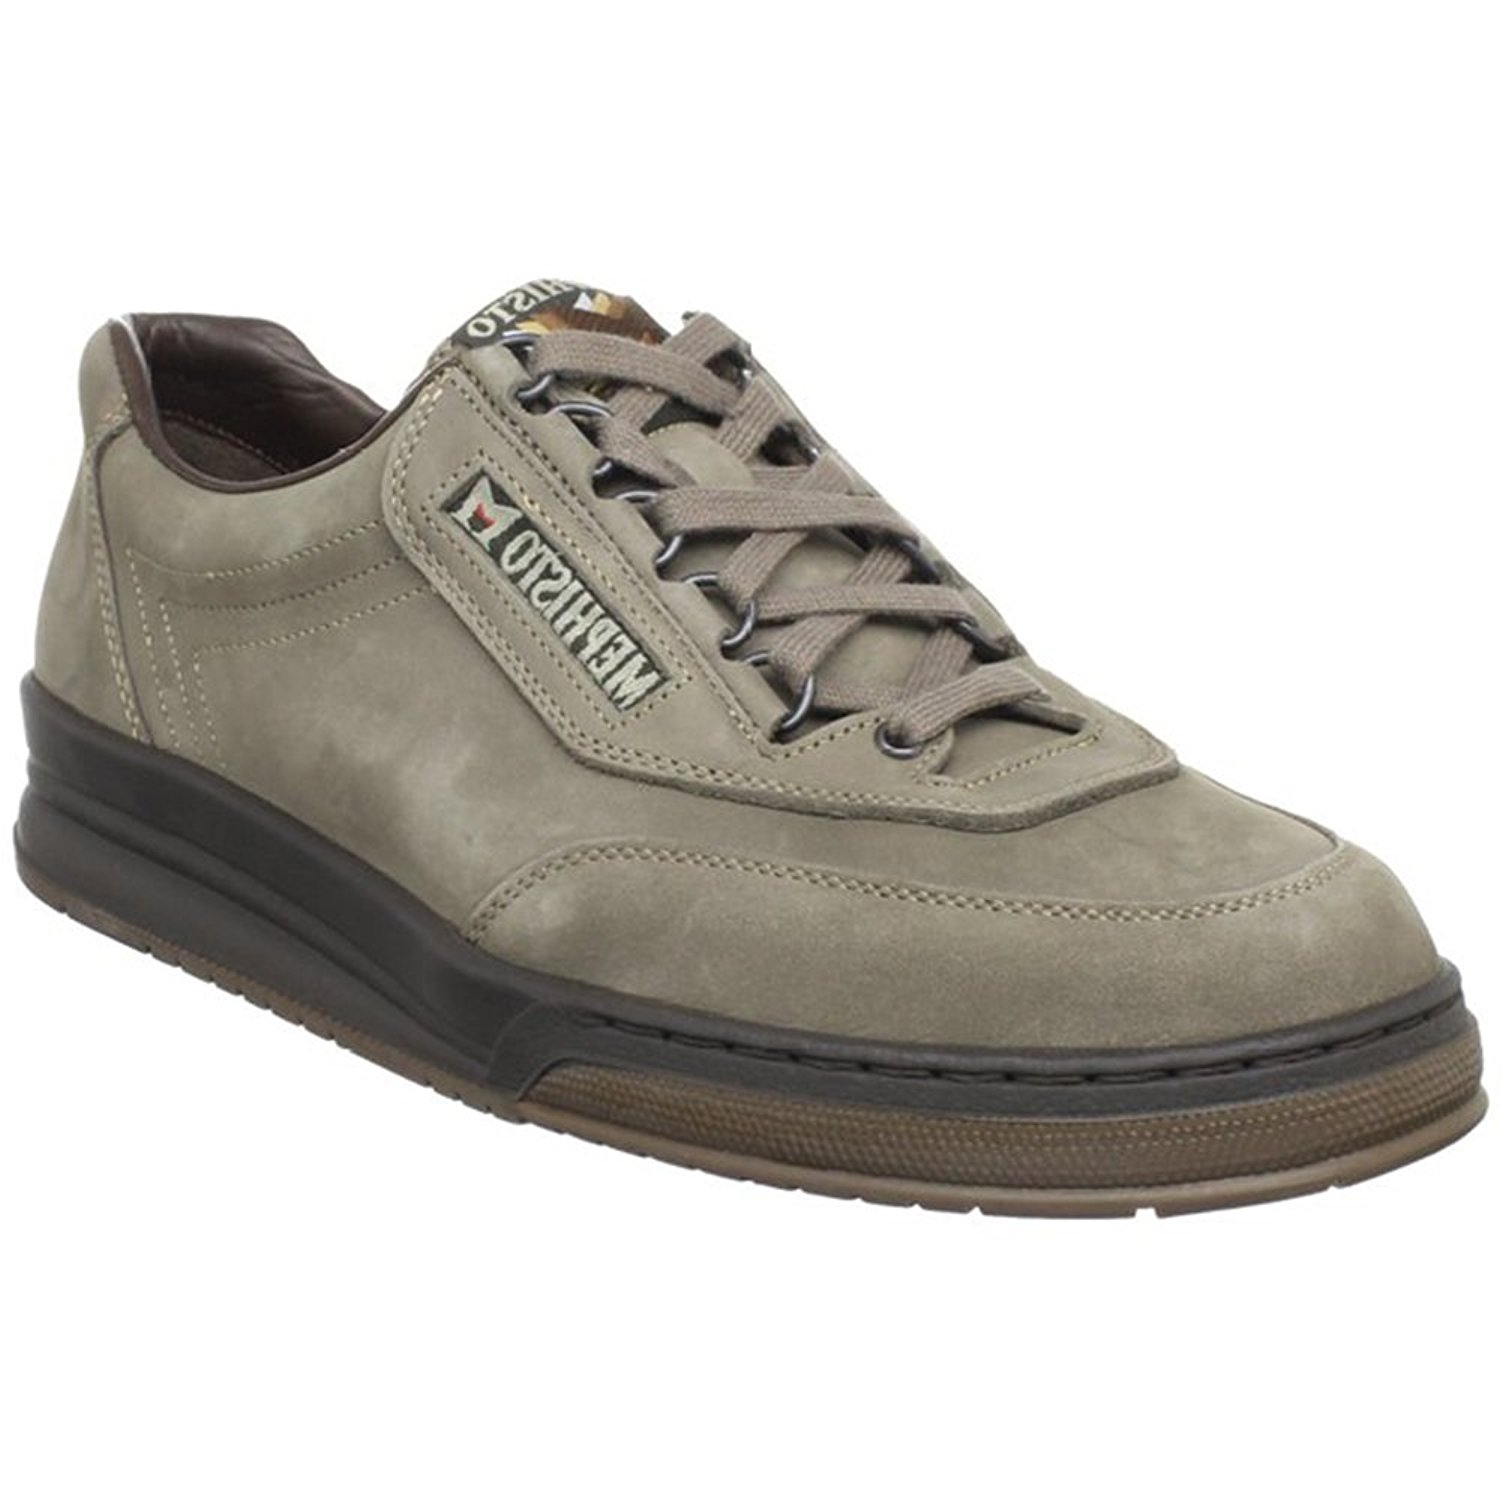 fb46c589ac Cheap Mephisto Shoes, find Mephisto Shoes deals on line at Alibaba.com